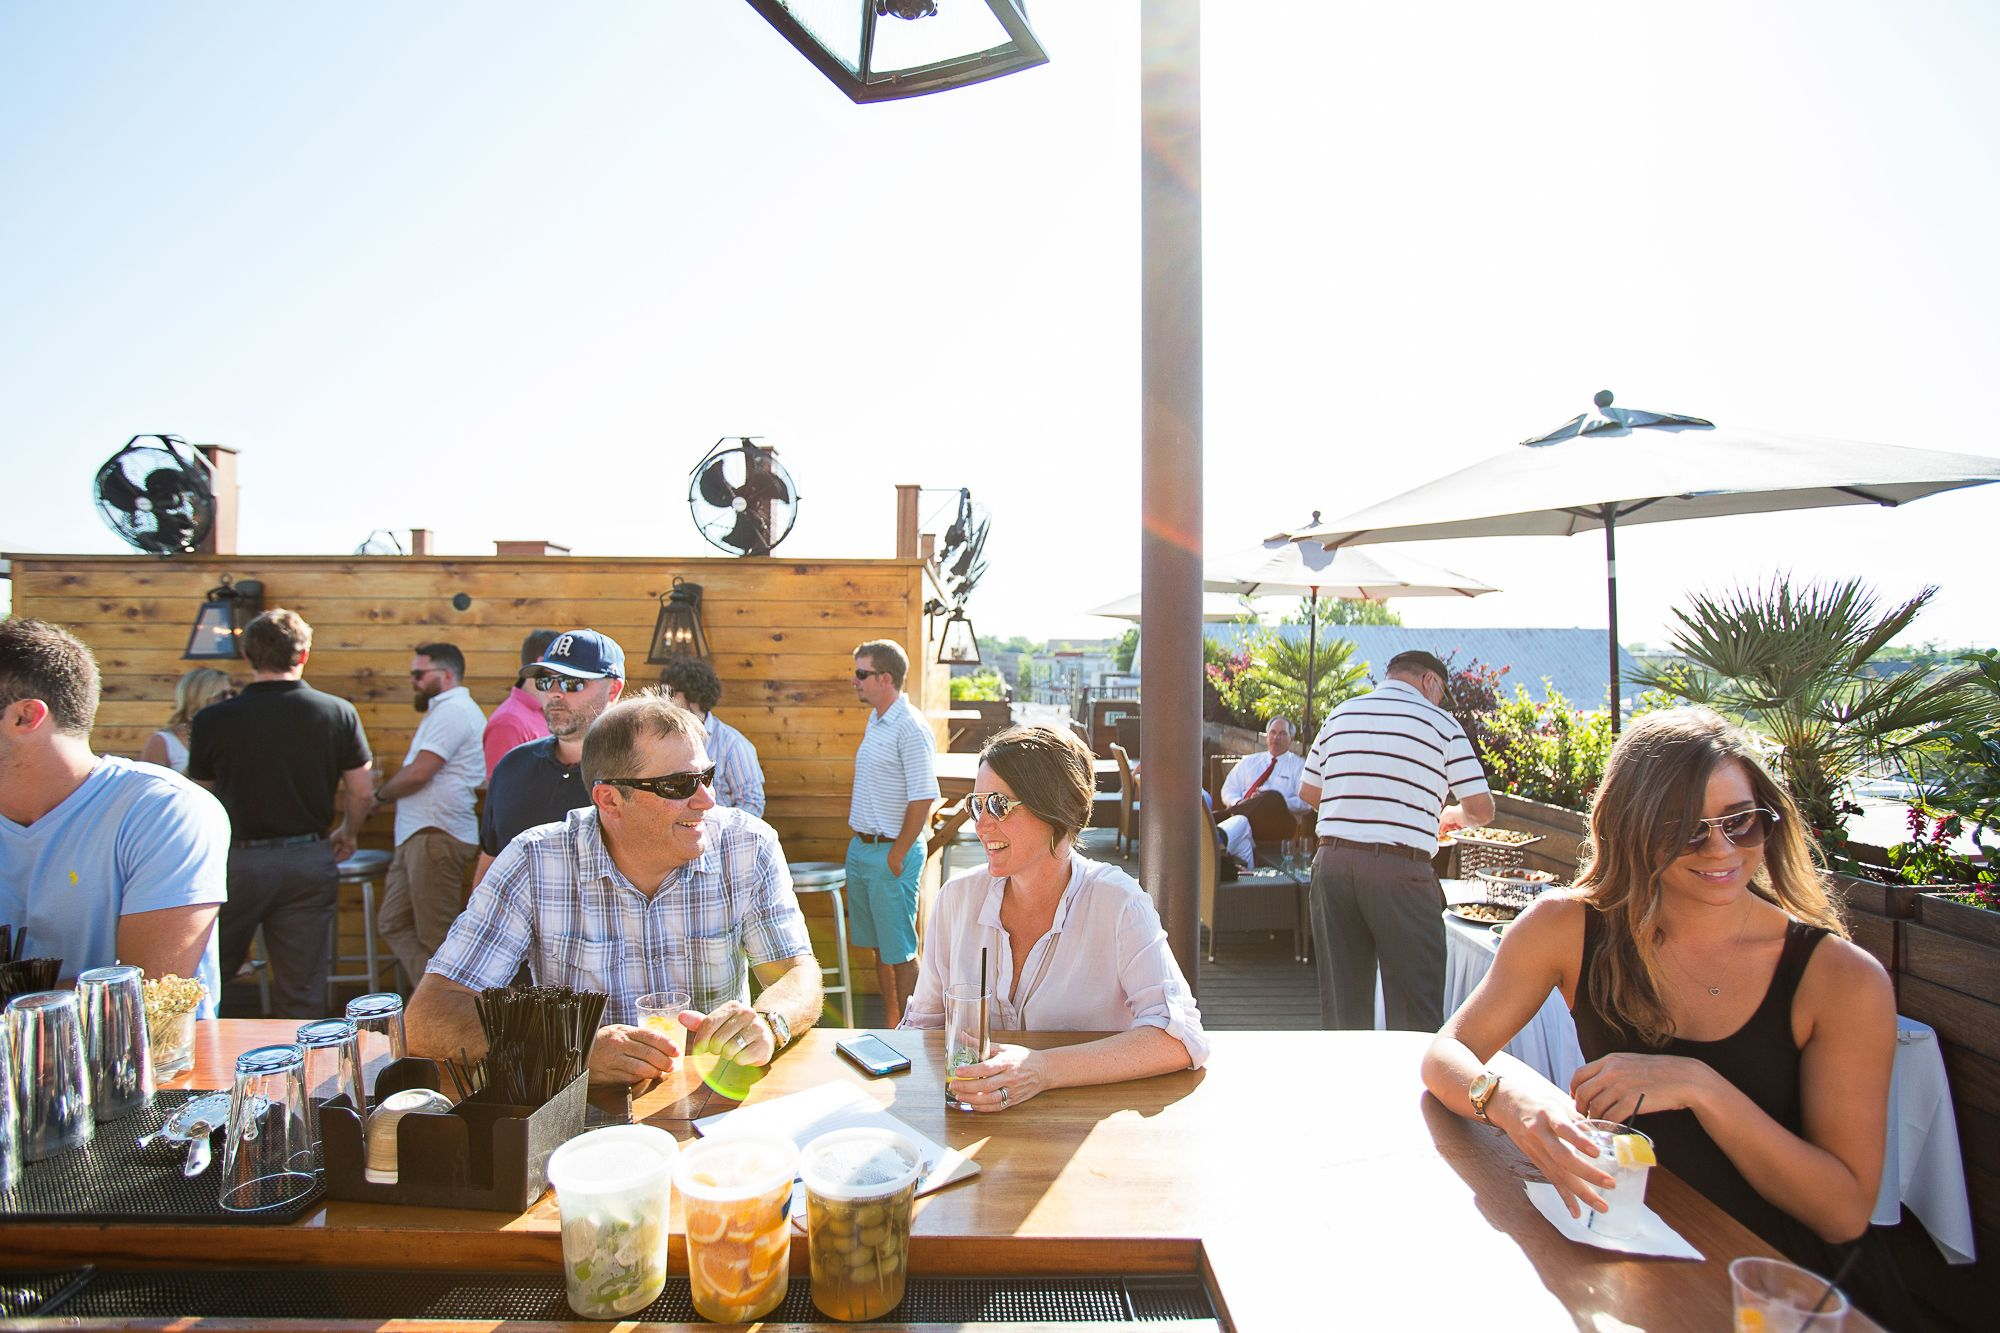 Great day for drinks on the rooftop bar at Stars Rooftop ...